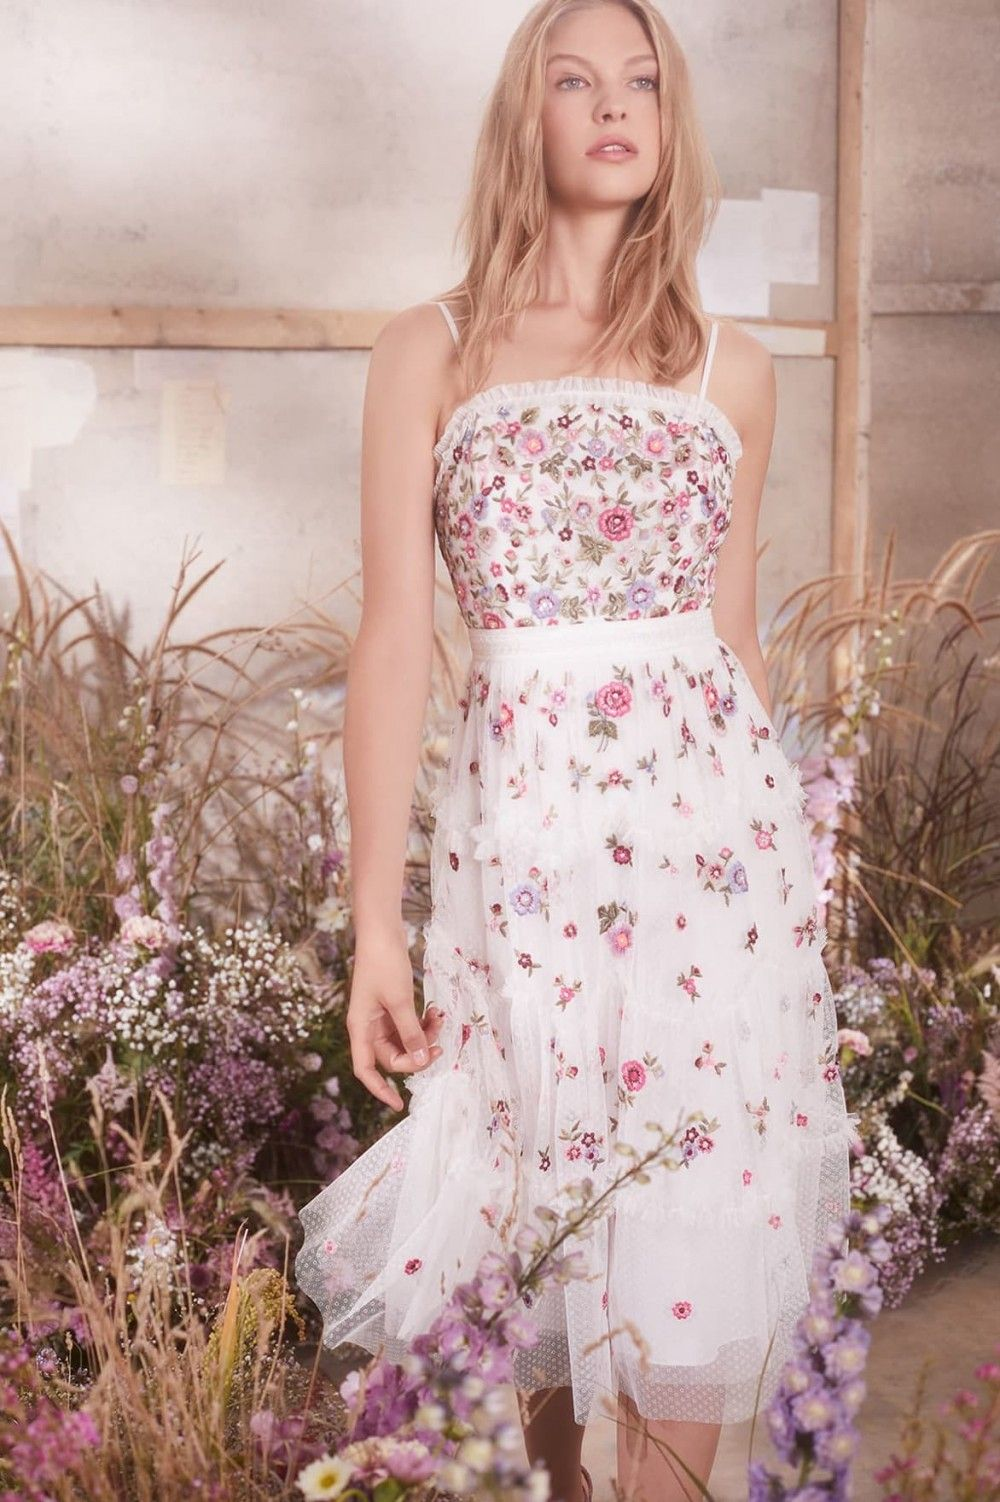 59b2ae3c0ad0 Midsummer Ditsy Dress in Ivory from Needle & Thread's New Season Collection.